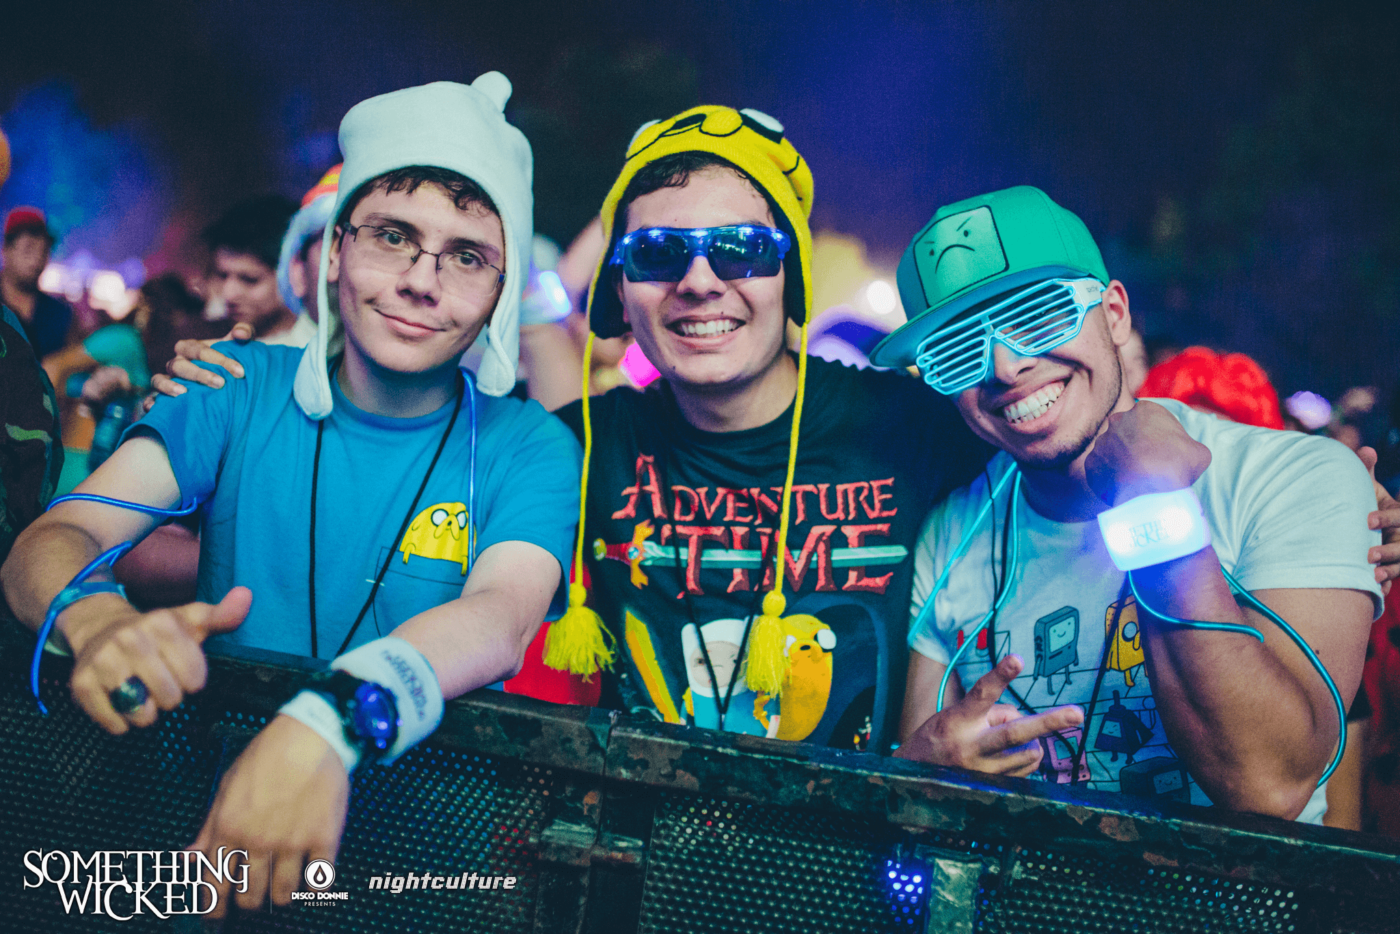 glow motion and spectified crew at something wicked